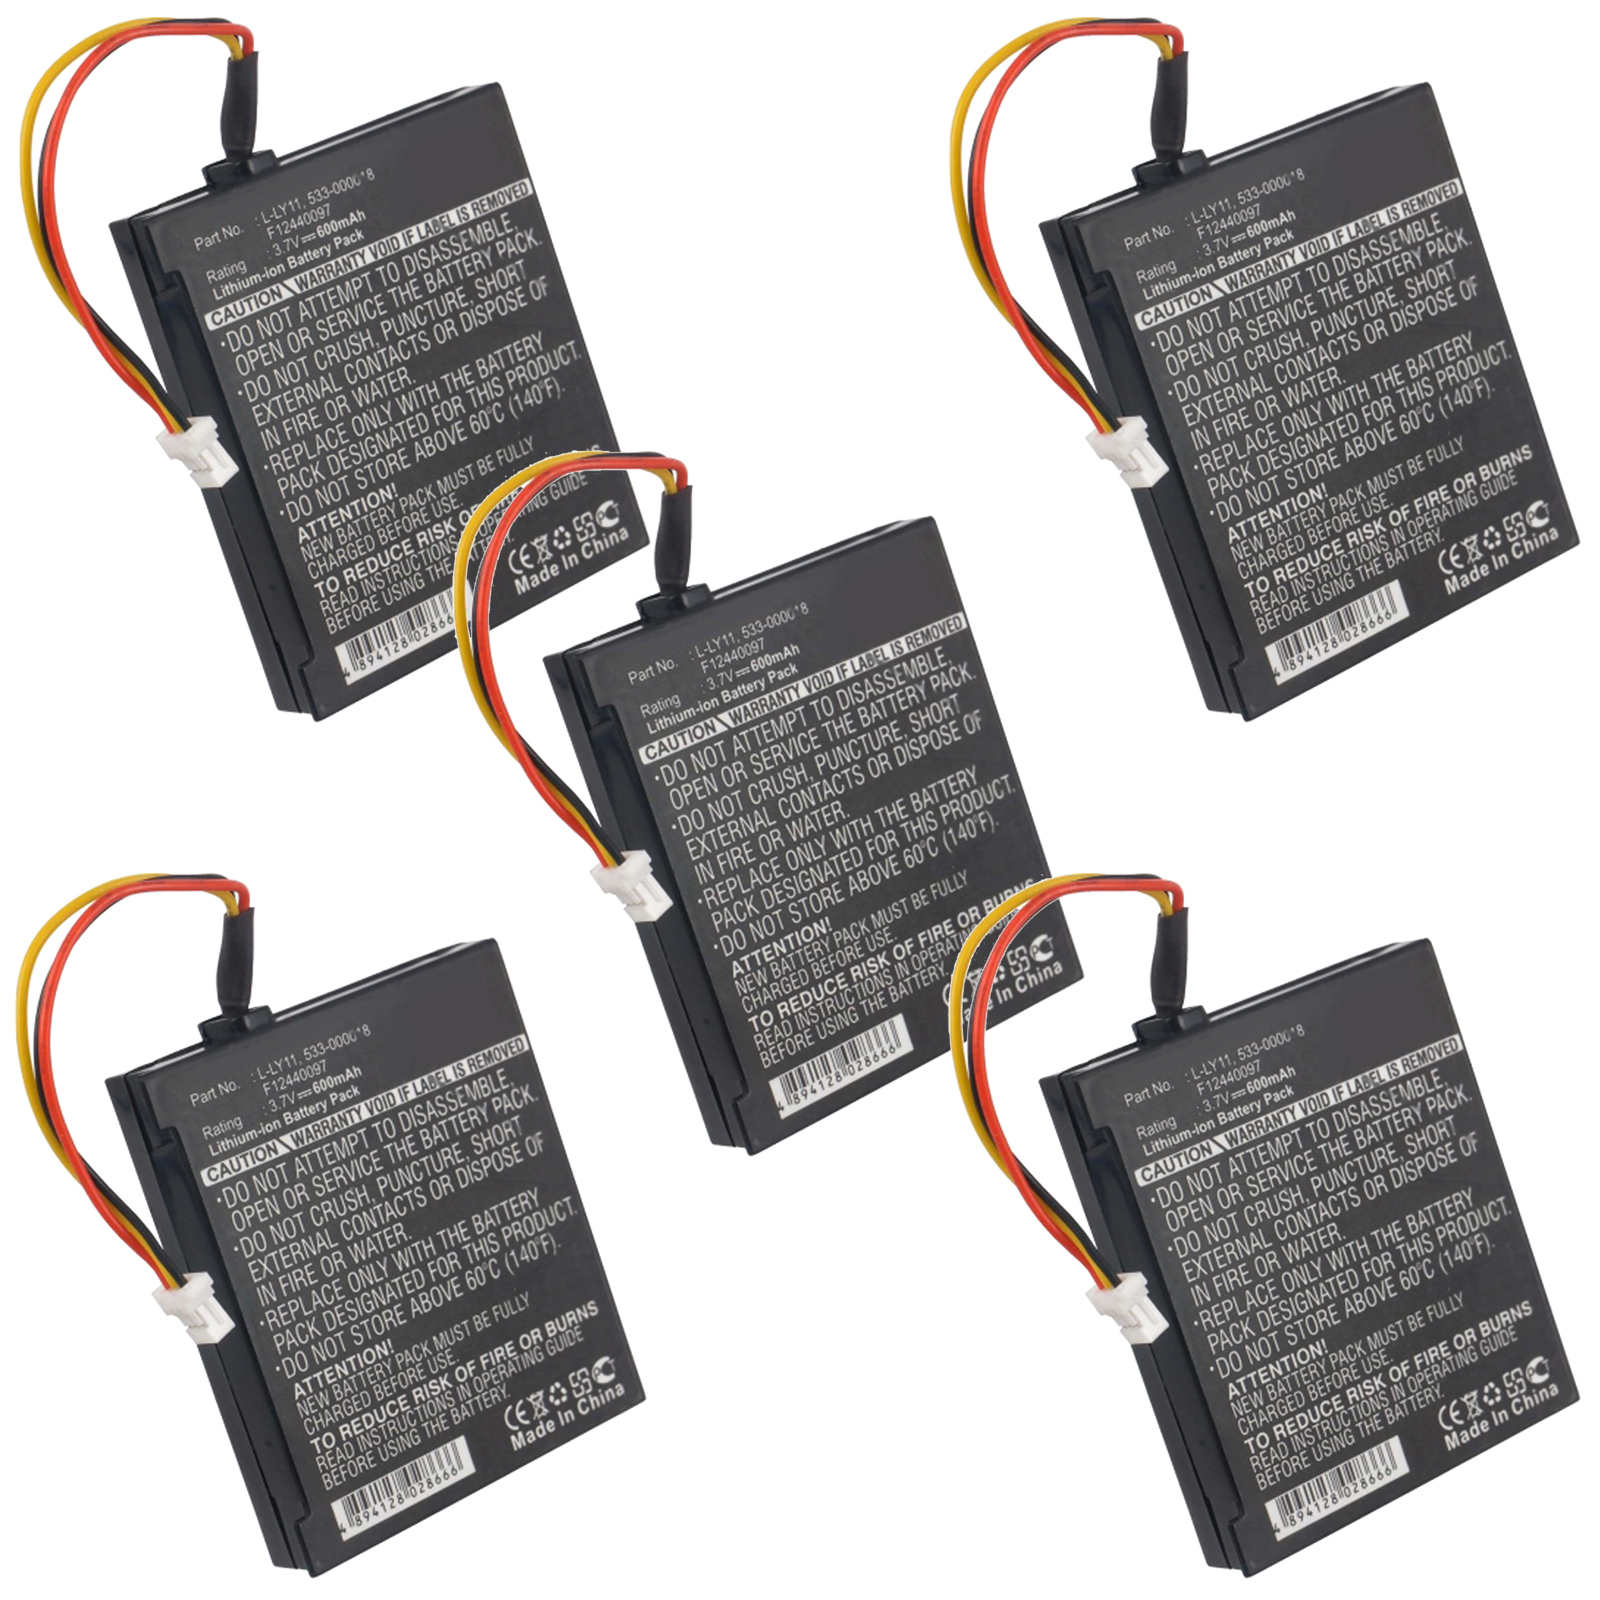 5pc Replacement Computer Mouse Battery For Logitech MX Revolution Mouse USA SHIP 819891014955   eBay